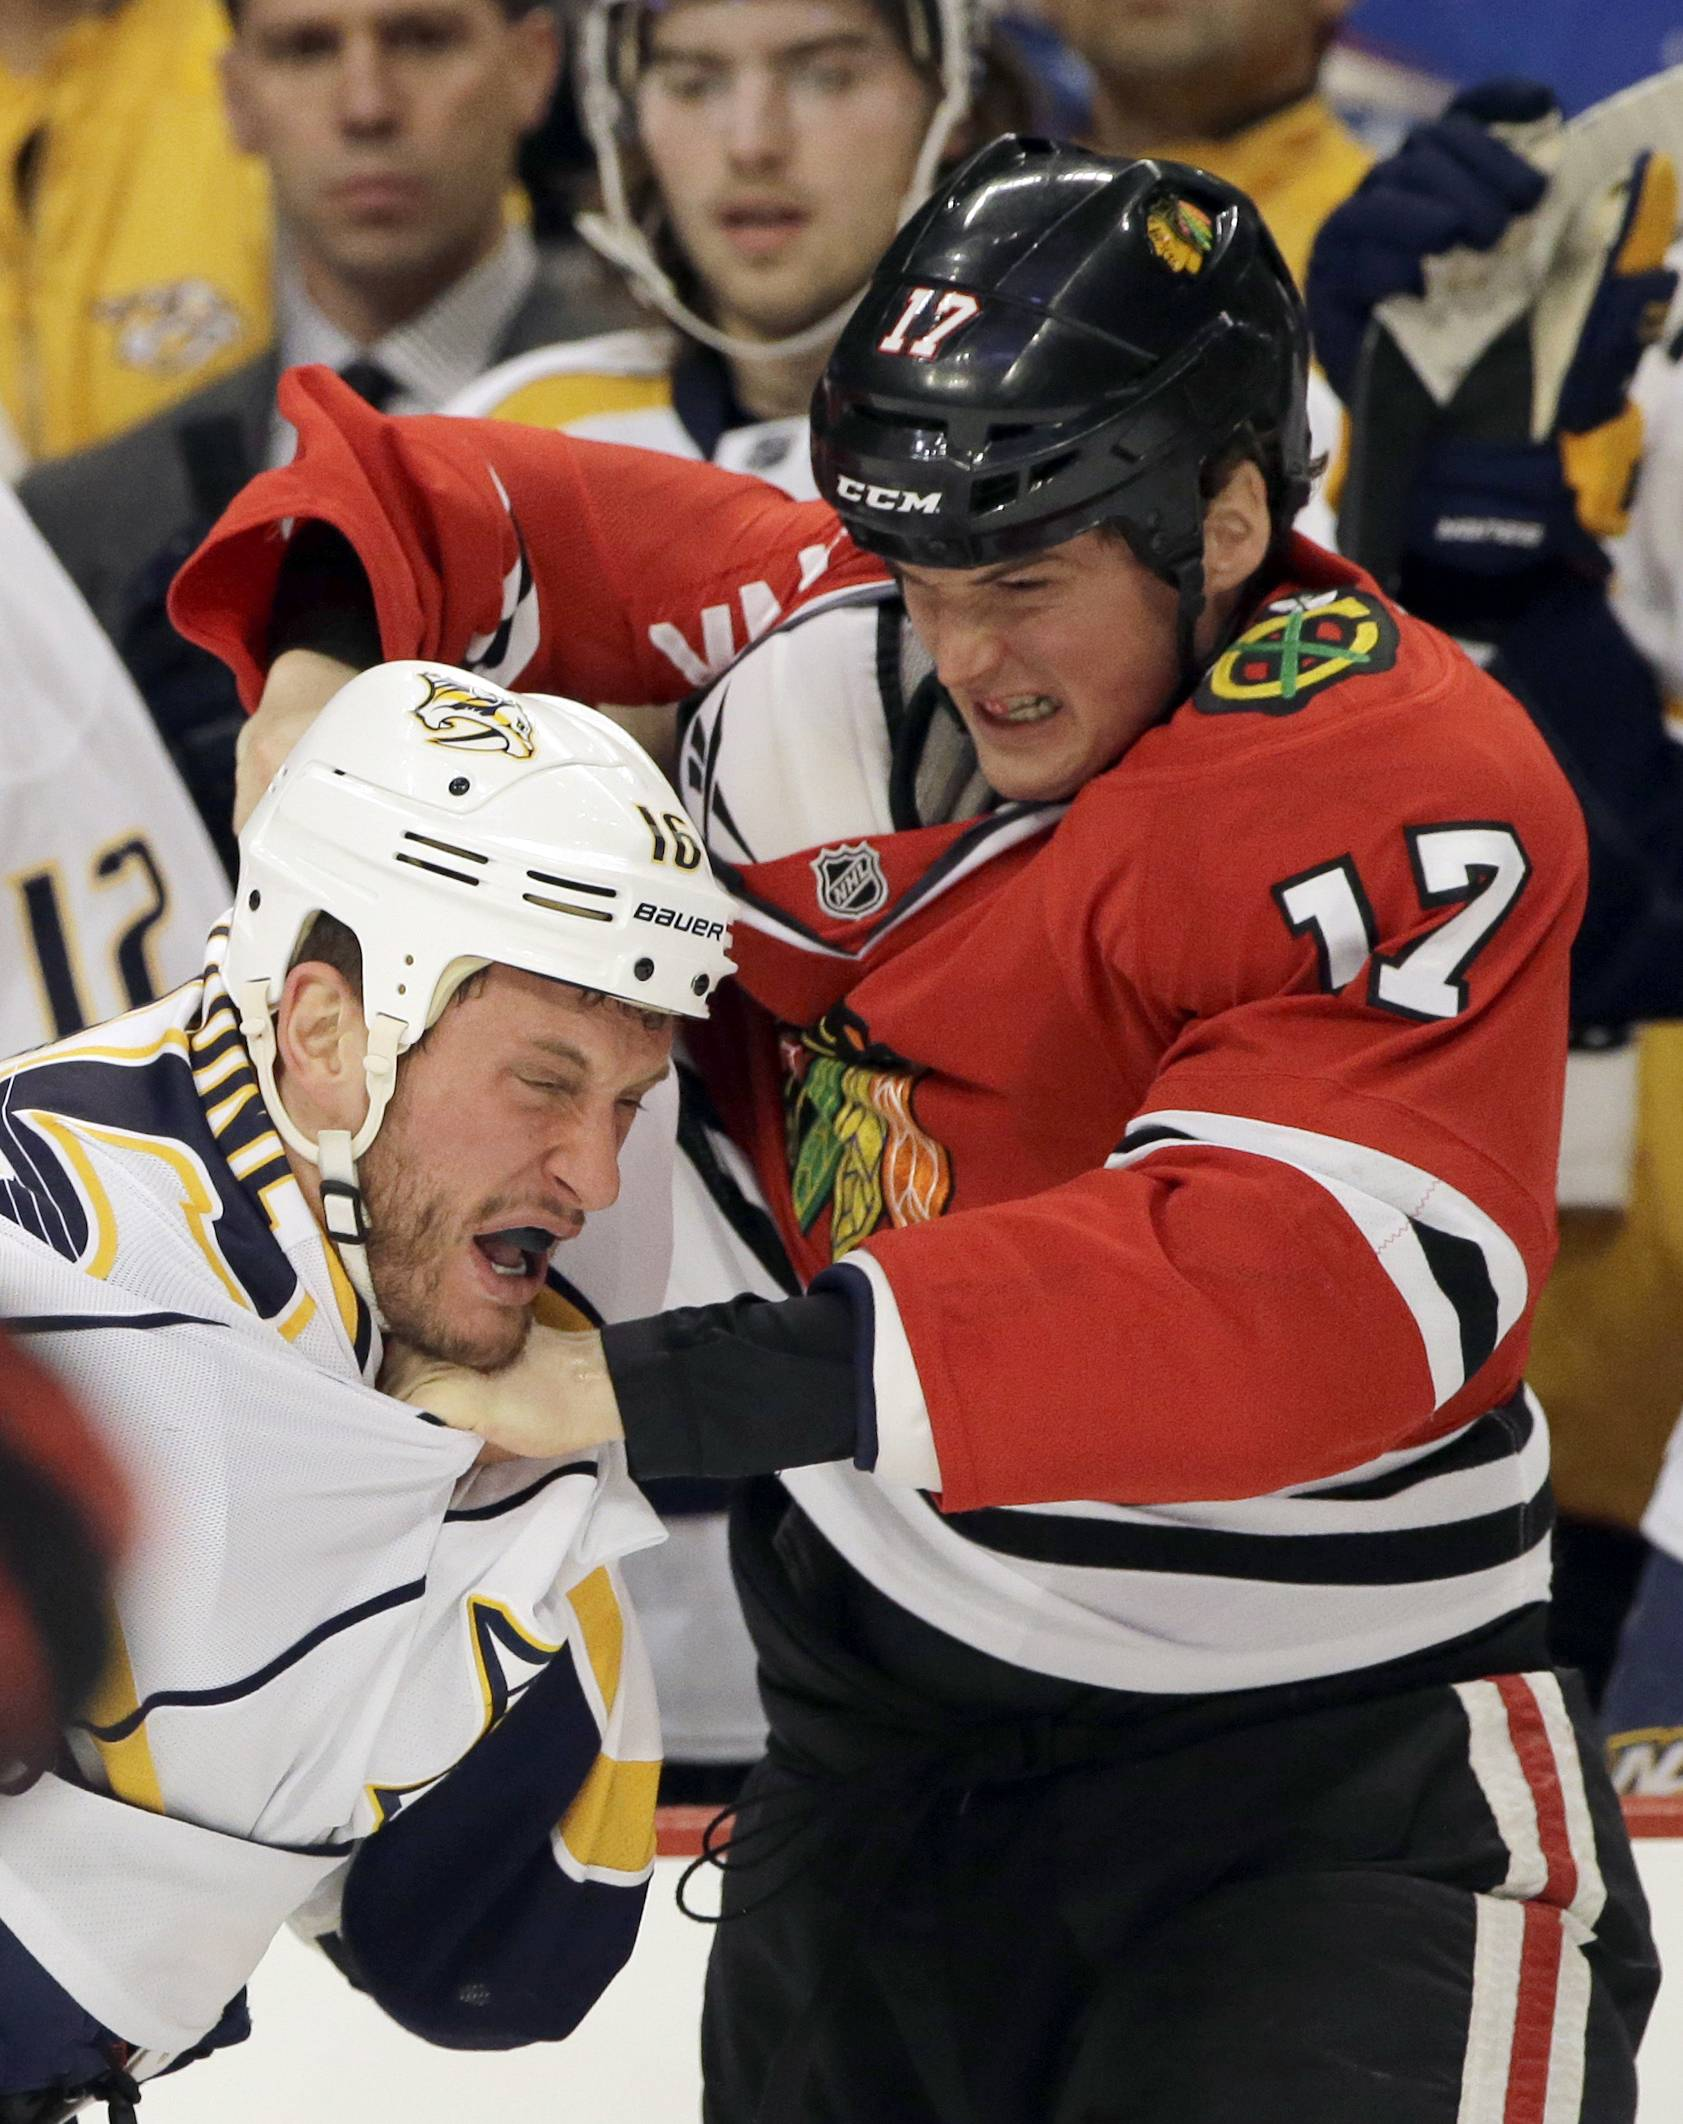 Carey wants to soak up all he can from Blackhawks